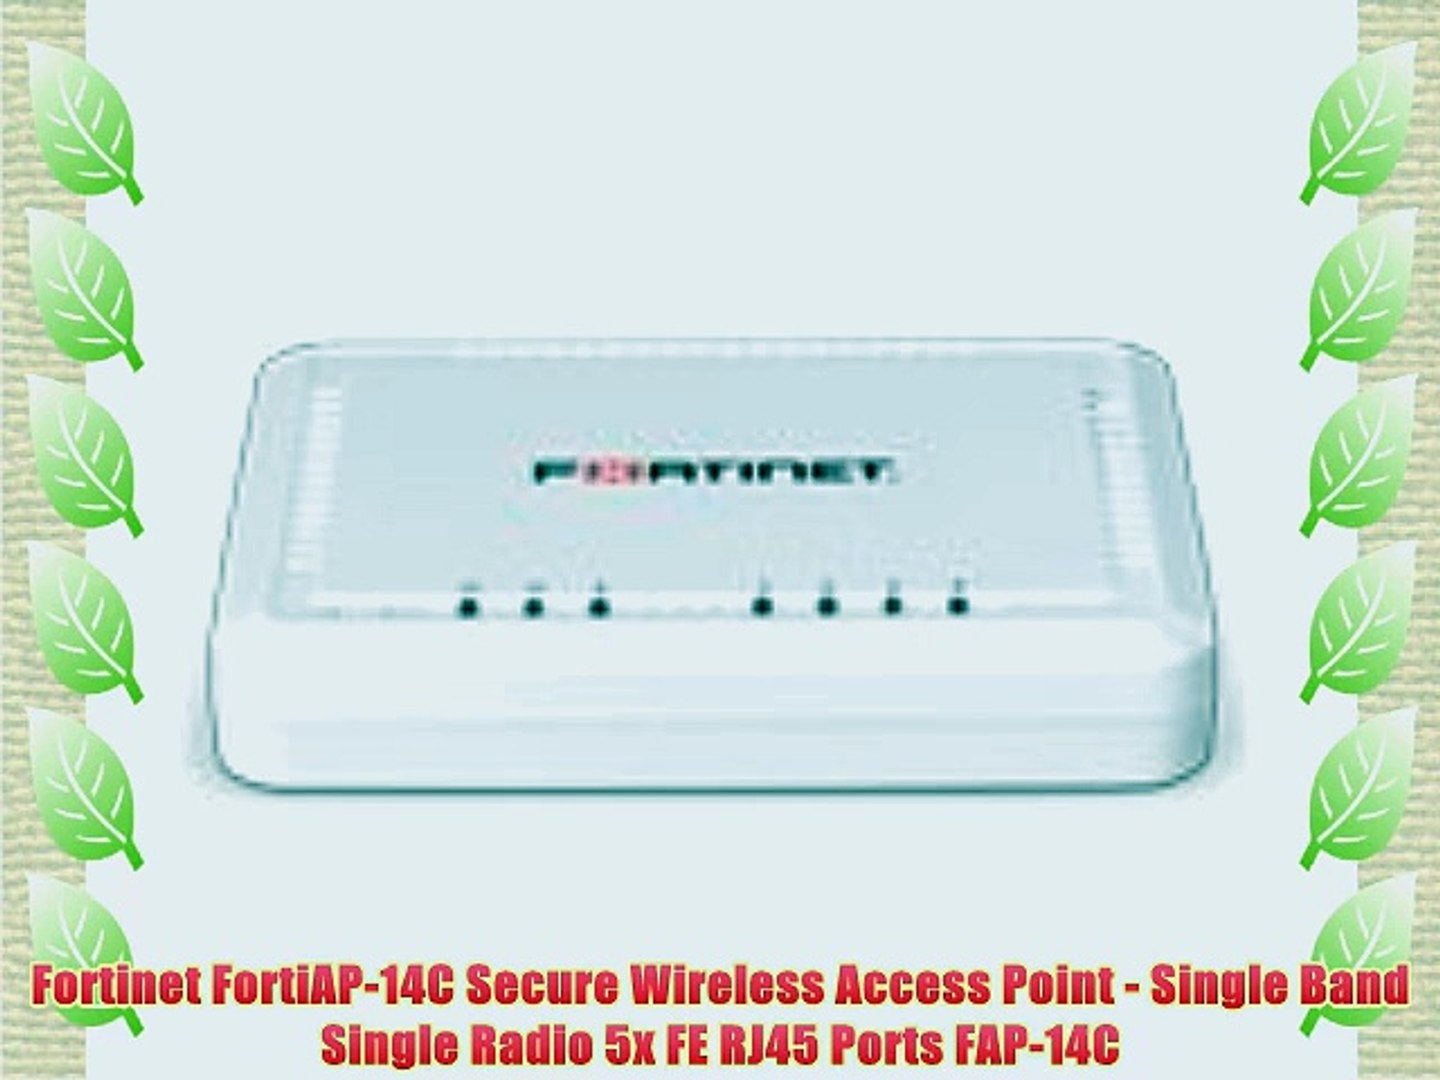 Fortinet FortiAP-14C Secure Wireless Access Point - Single Band Single  Radio 5x FE RJ45 Ports